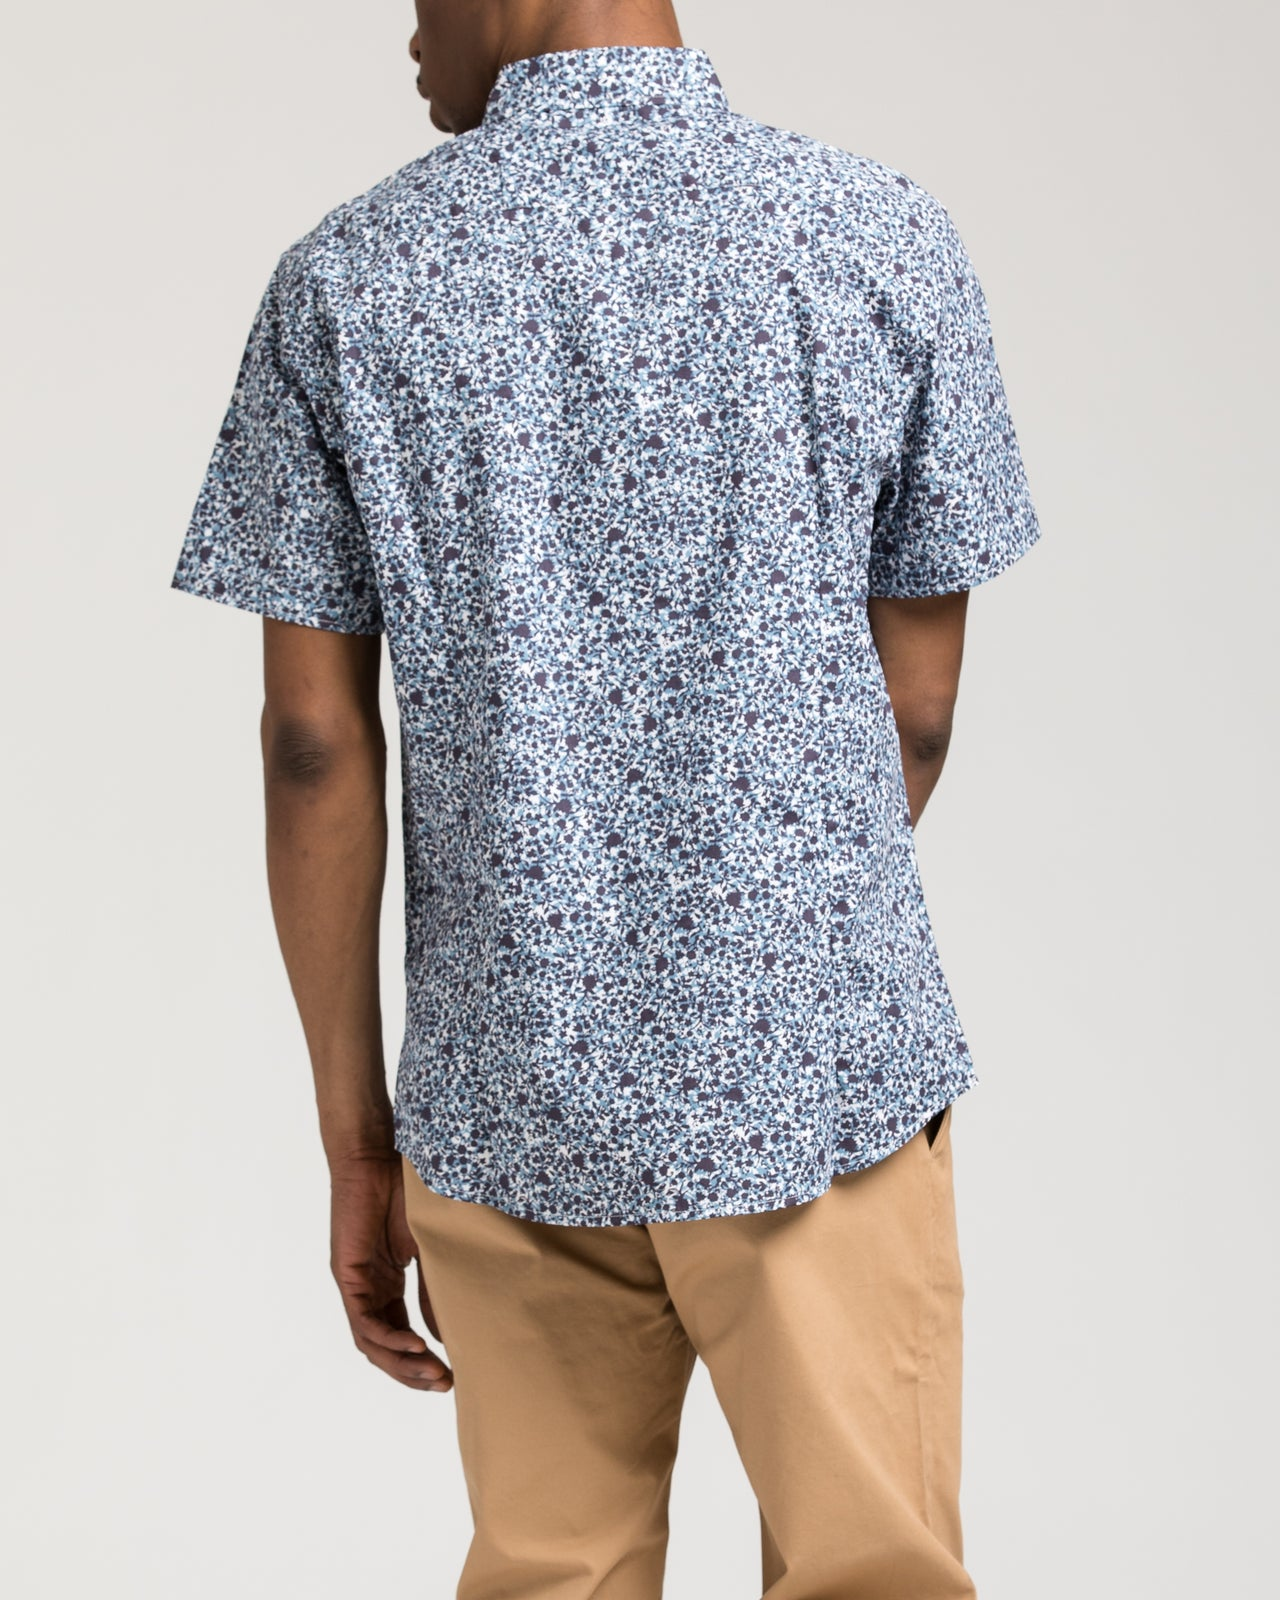 Short Sleeve Floral Shirt - Color: White/Blue | White